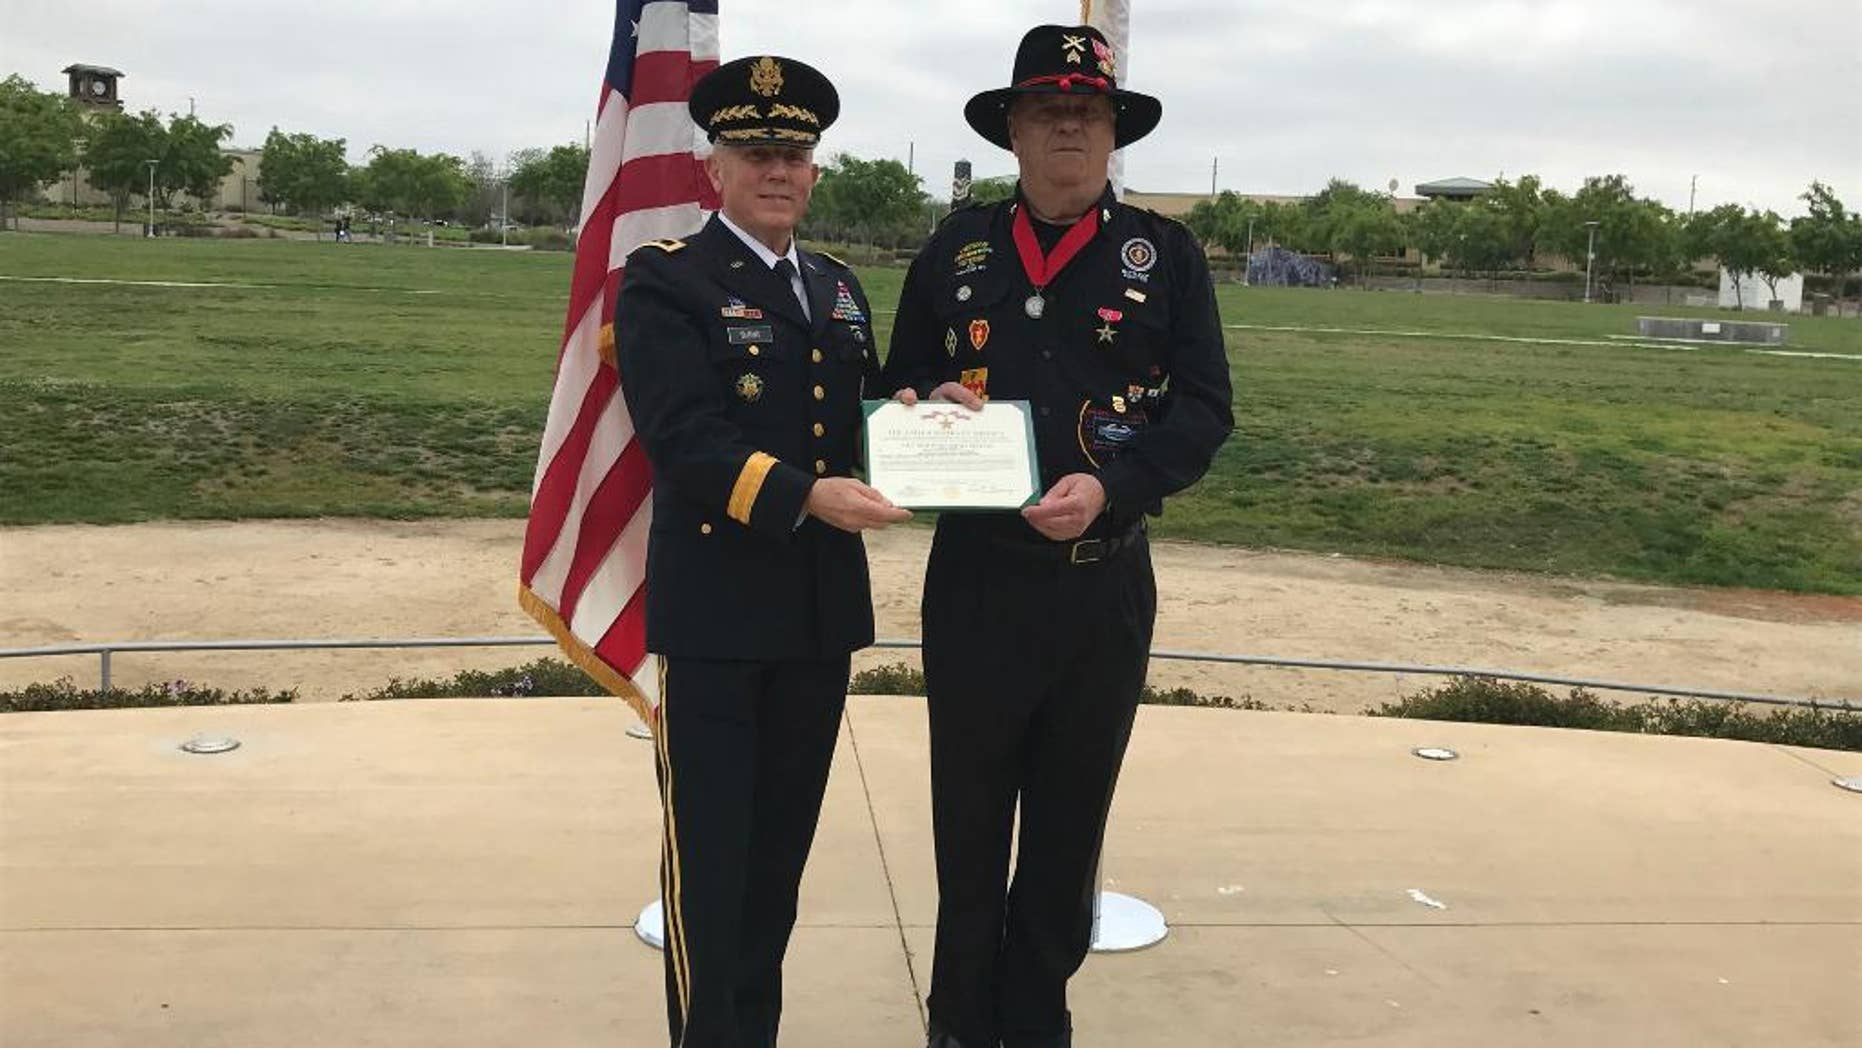 In this Monday, March 20, 2017, photo provided by the California Army National Guard, former Army Maj. Gen. Juilian Burns, left, presents retired U.S. Army Sgt. Joseph Engles with the Bronze Star during a ceremony in his hometown of Murrieta, Calif. Engles received the honor for gallantry in the face of the enemy during the Battle of Suoi Tre, Vietnam in March 1967. (Capt. Will Martin/California Army National Guard via AP)